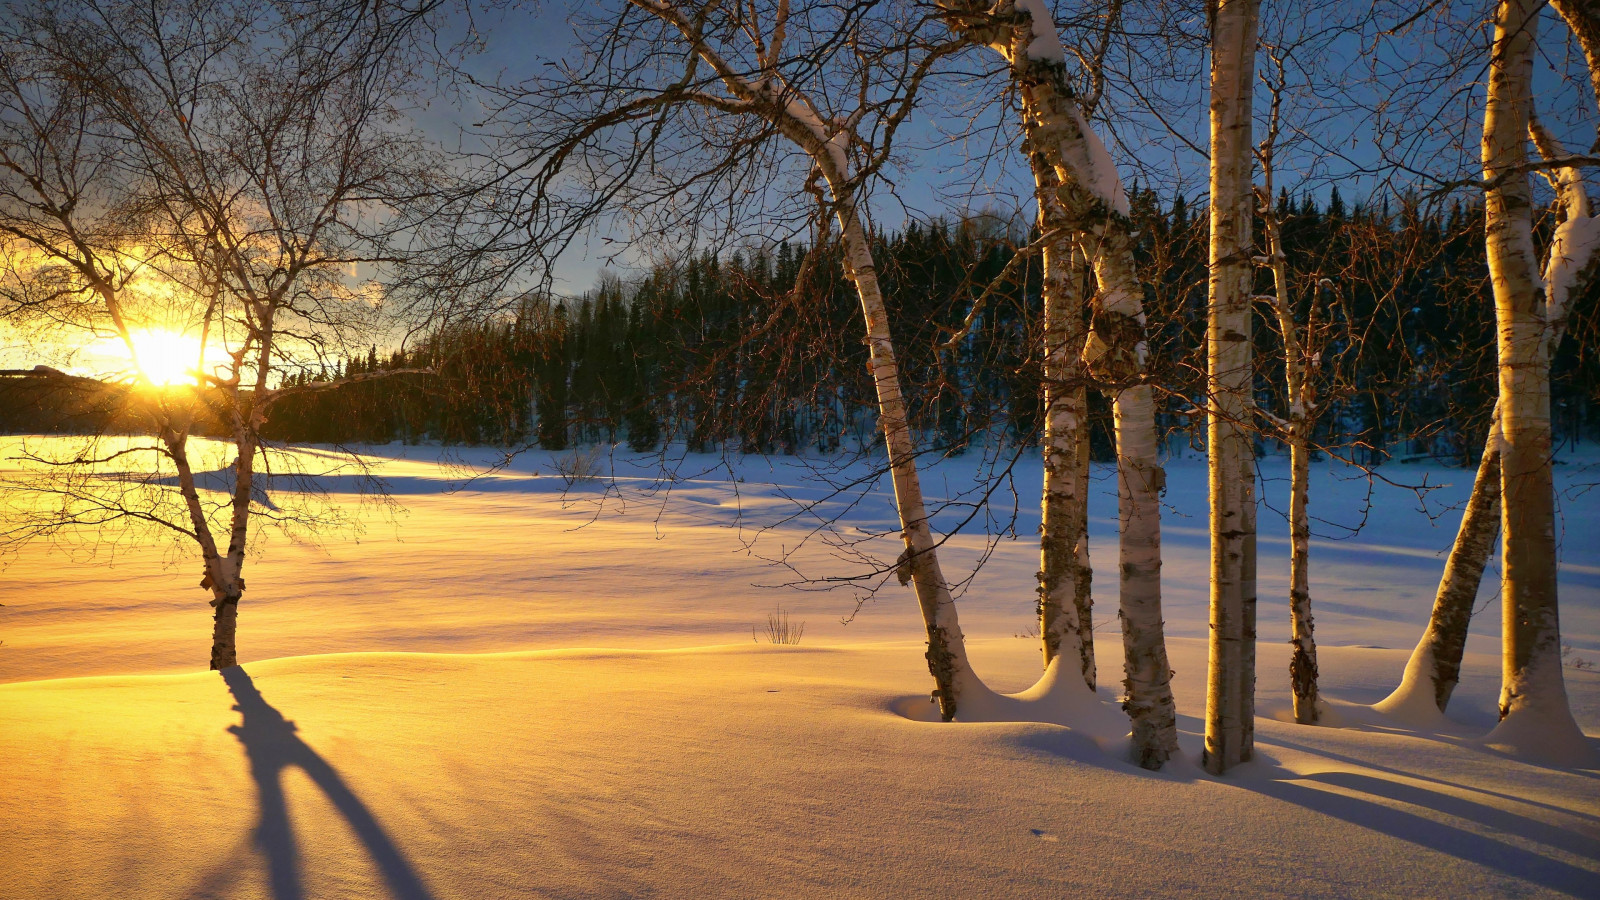 Epic Winter sunset wallpaper 1600x900